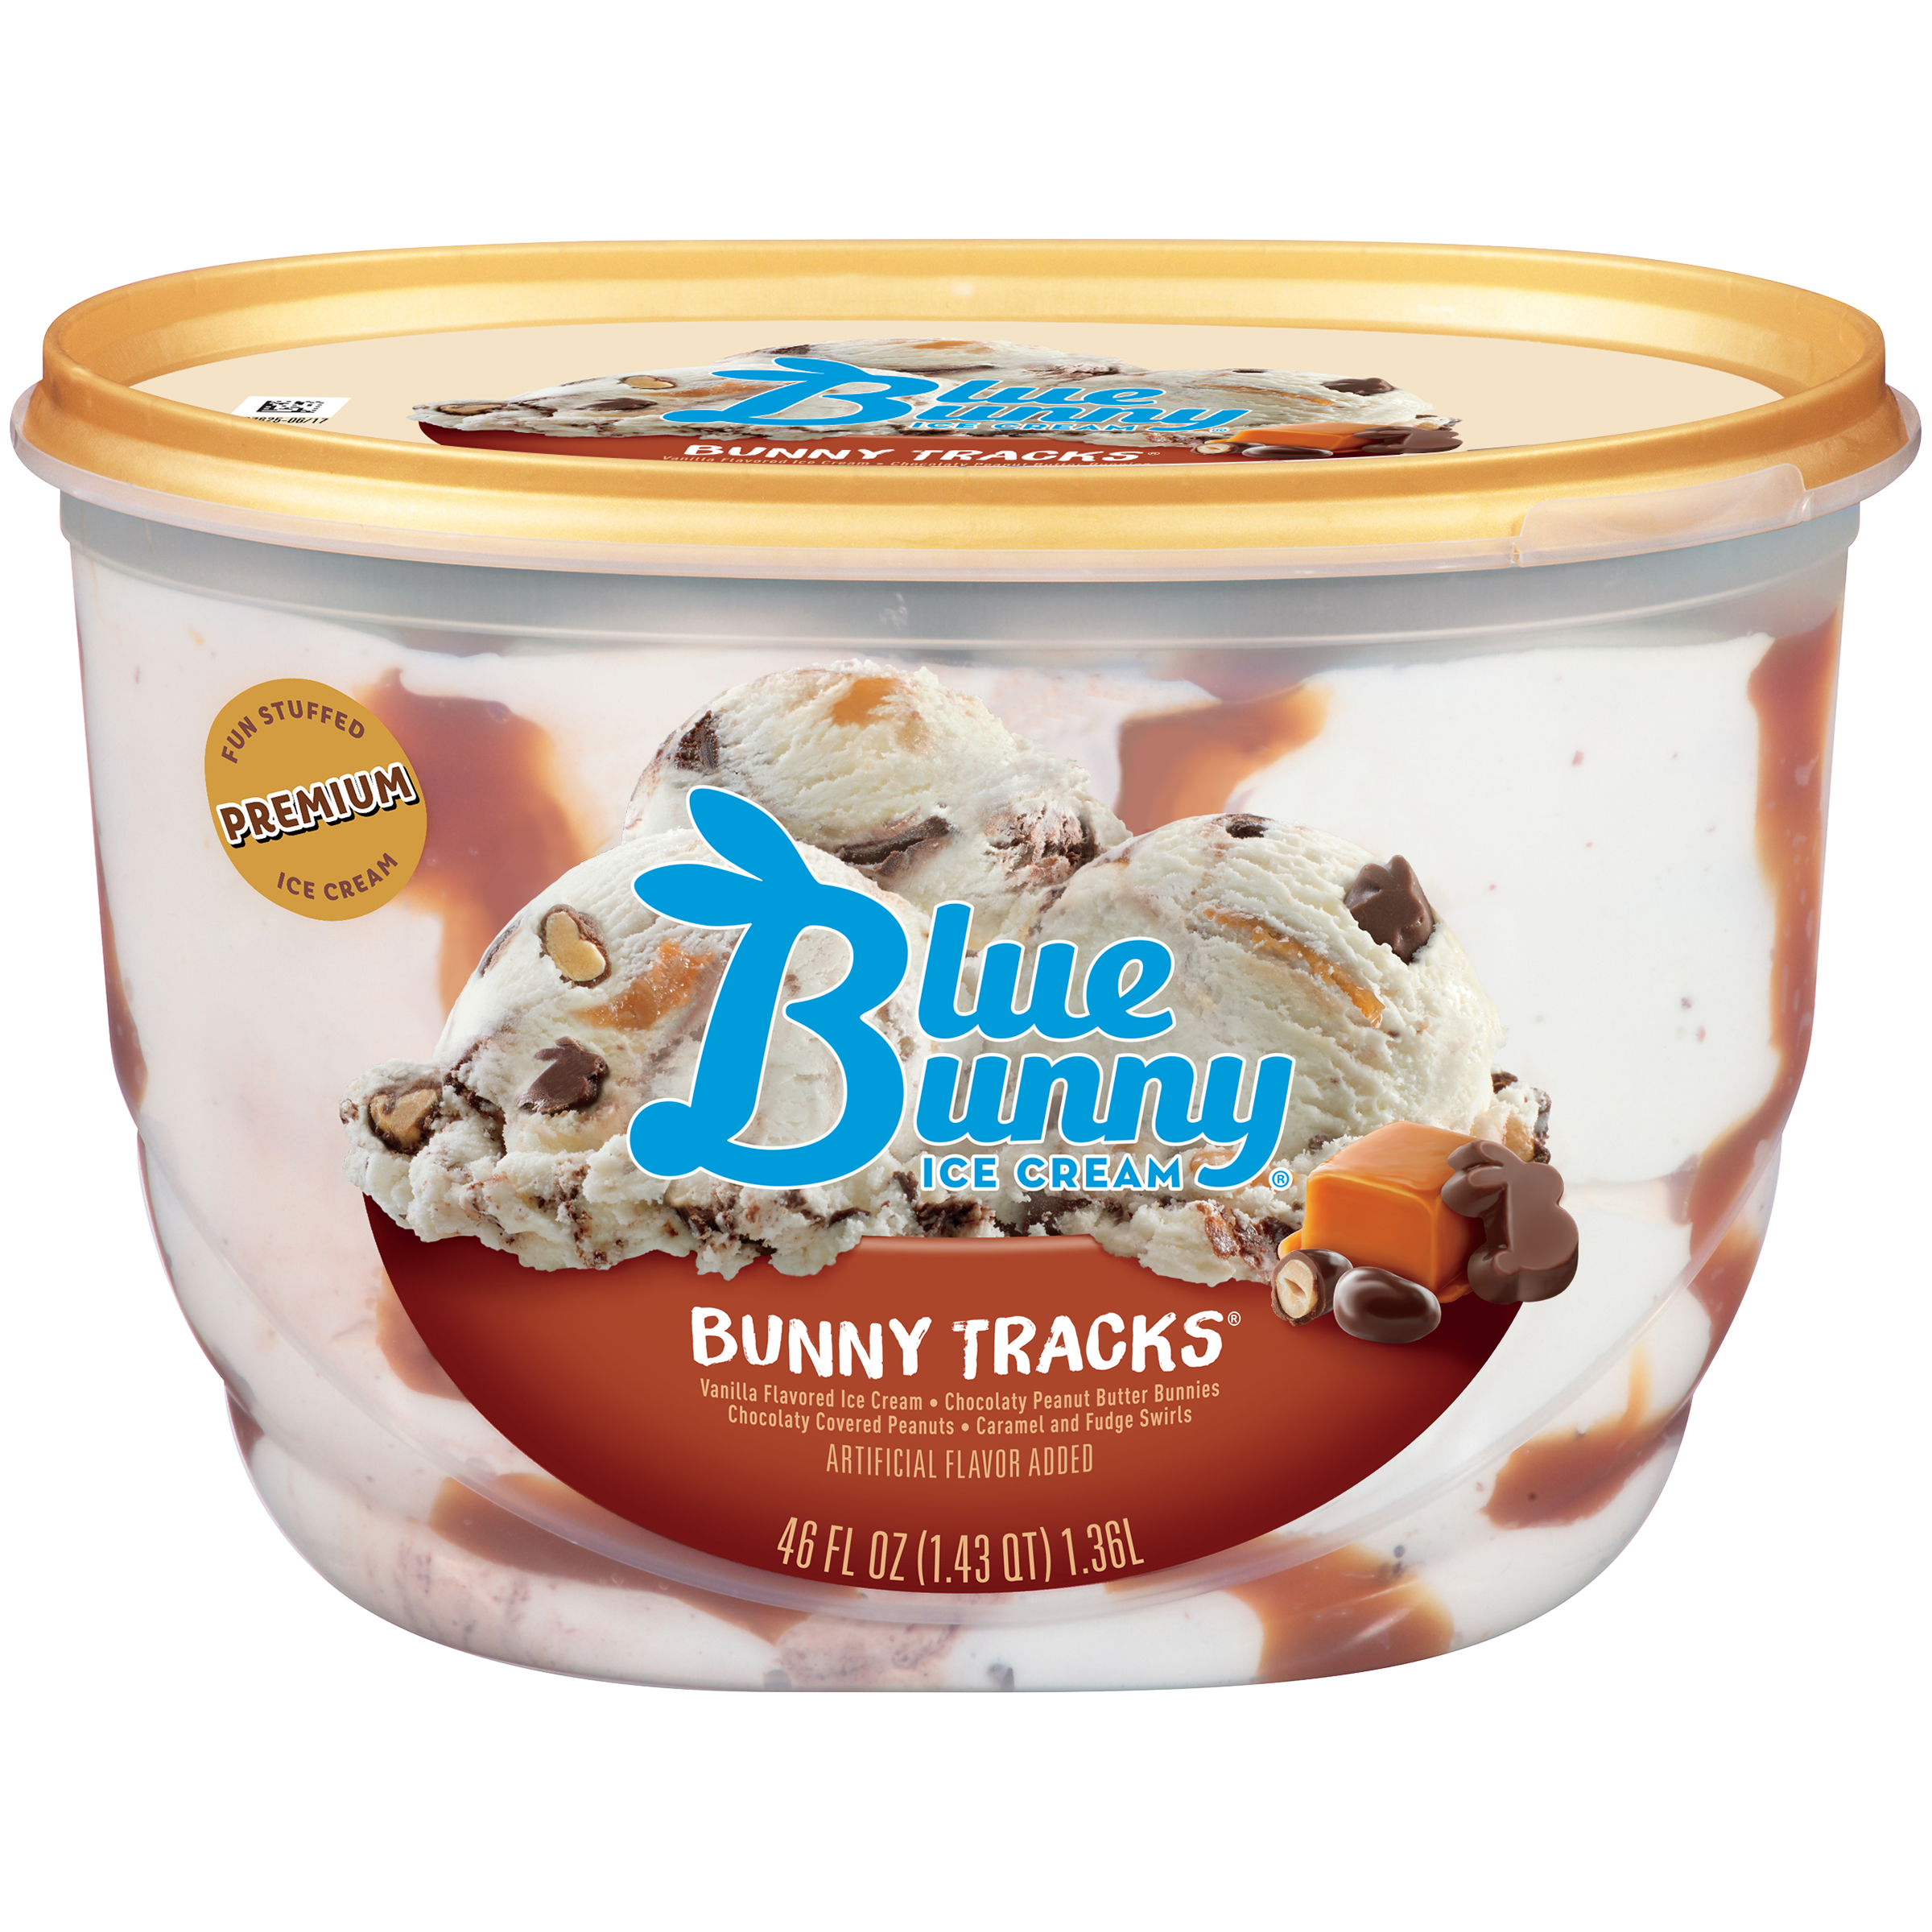 Blue Bunny Bunny Tracks® Ice Cream, 46 fl oz